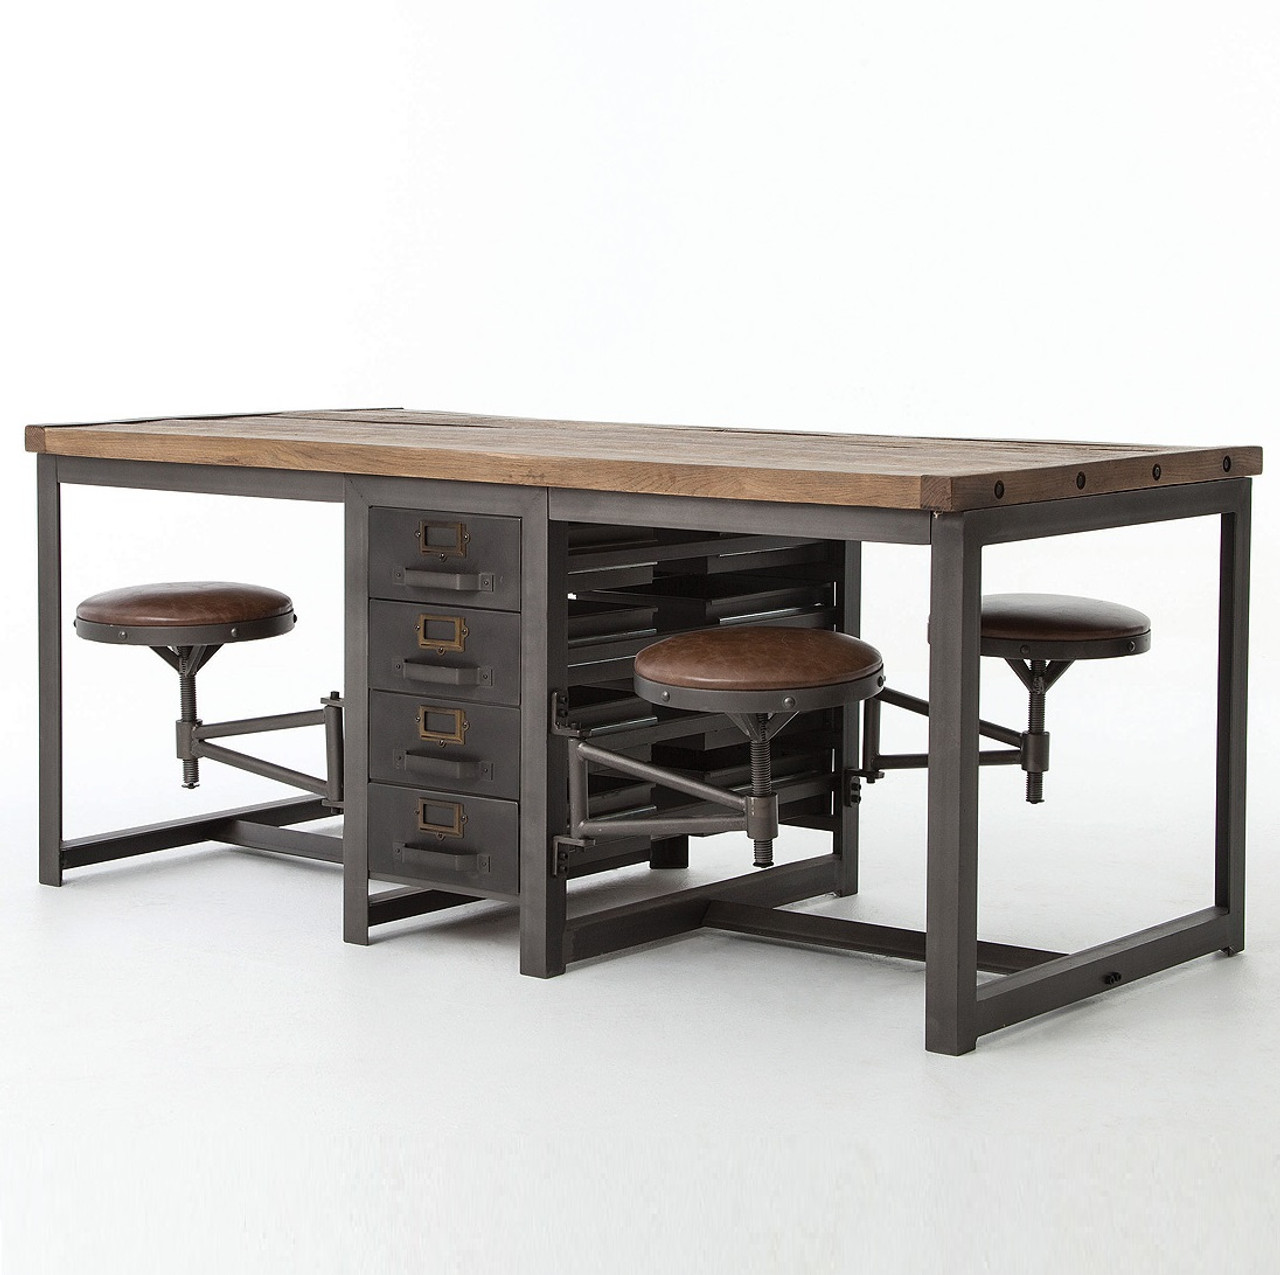 Round Dining Room Tables For 4 Rupert Industrial Architect Work Table Desk With Attached